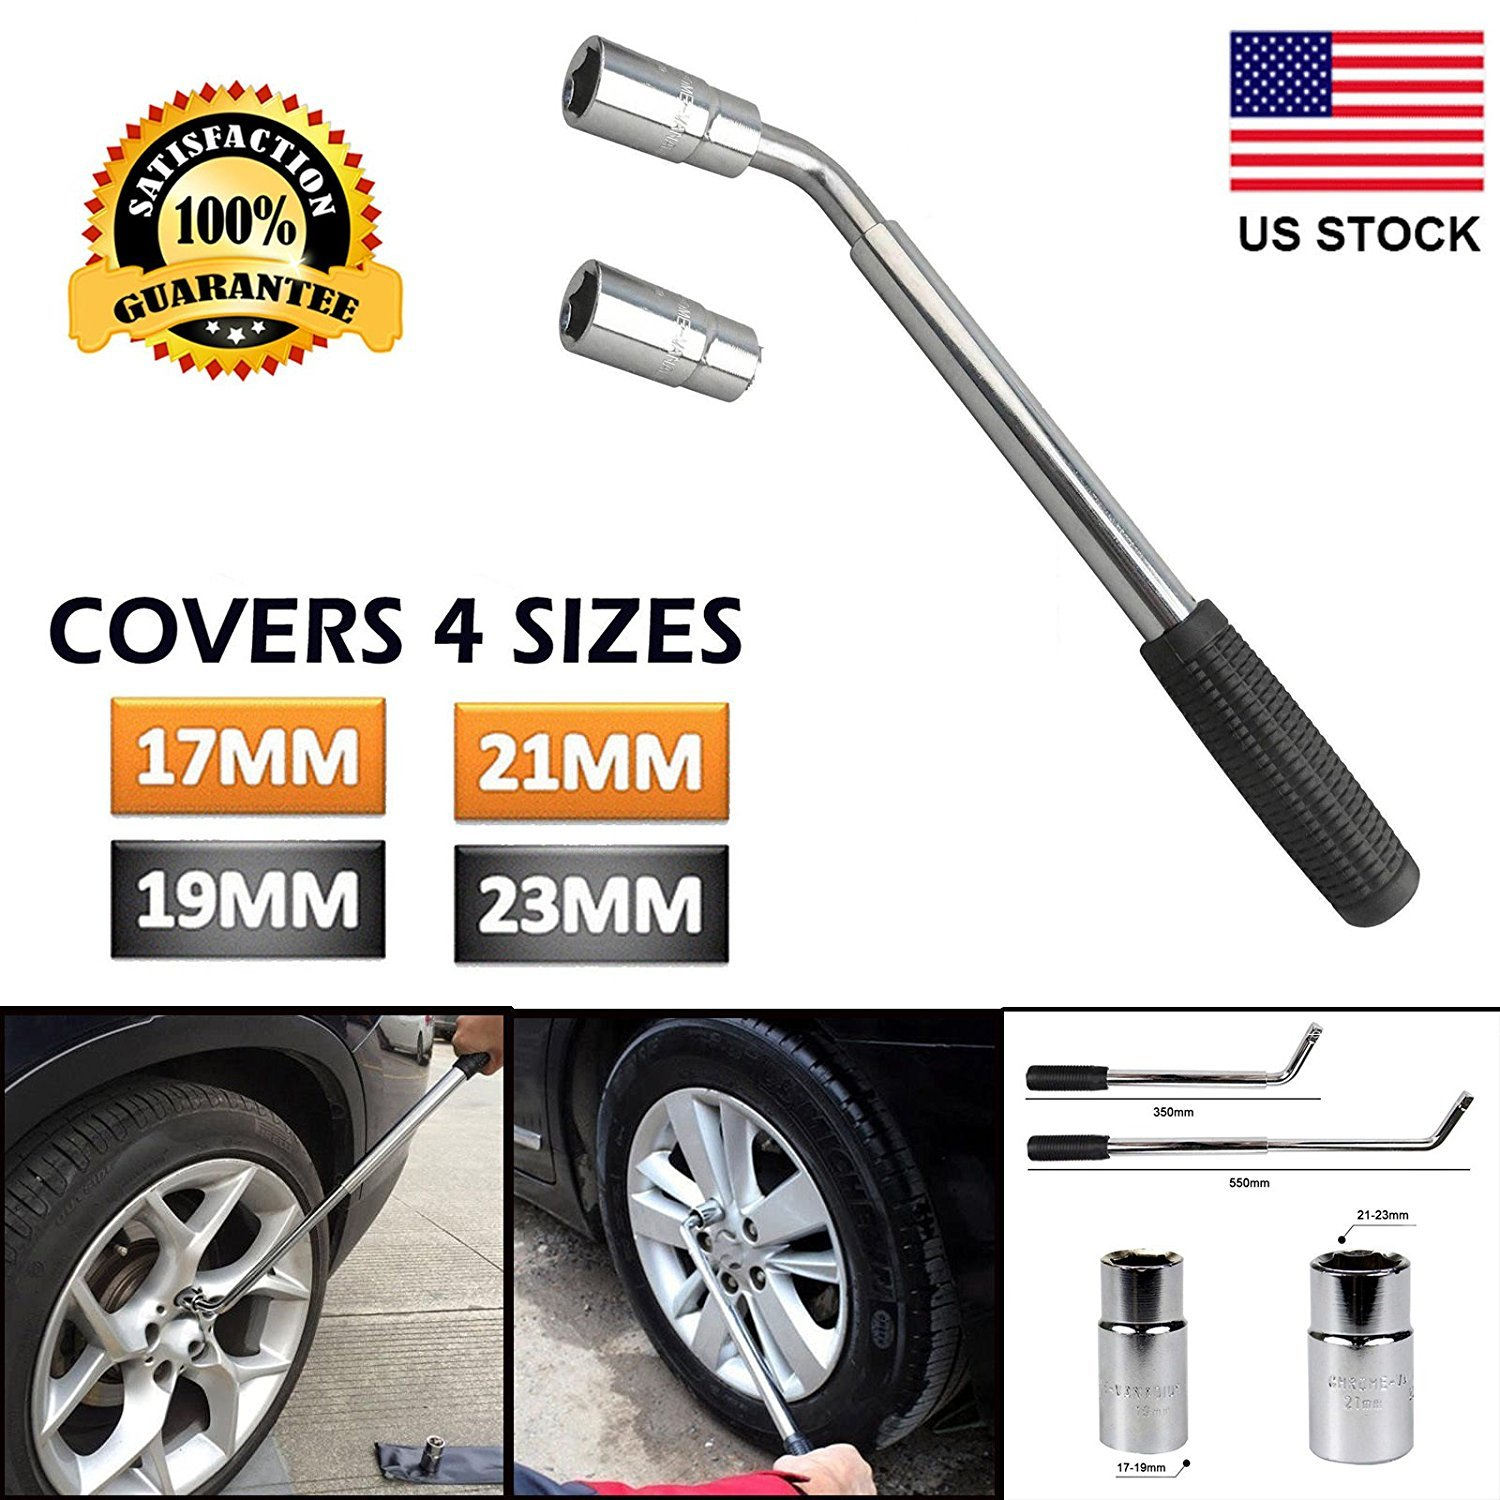 Extendable Wheel Brace Lug Nut Wrench with 17/19/21/23mm Standard Sockets for Car Van Truck Spare Tire Breakdown Emergency Tools US Ship